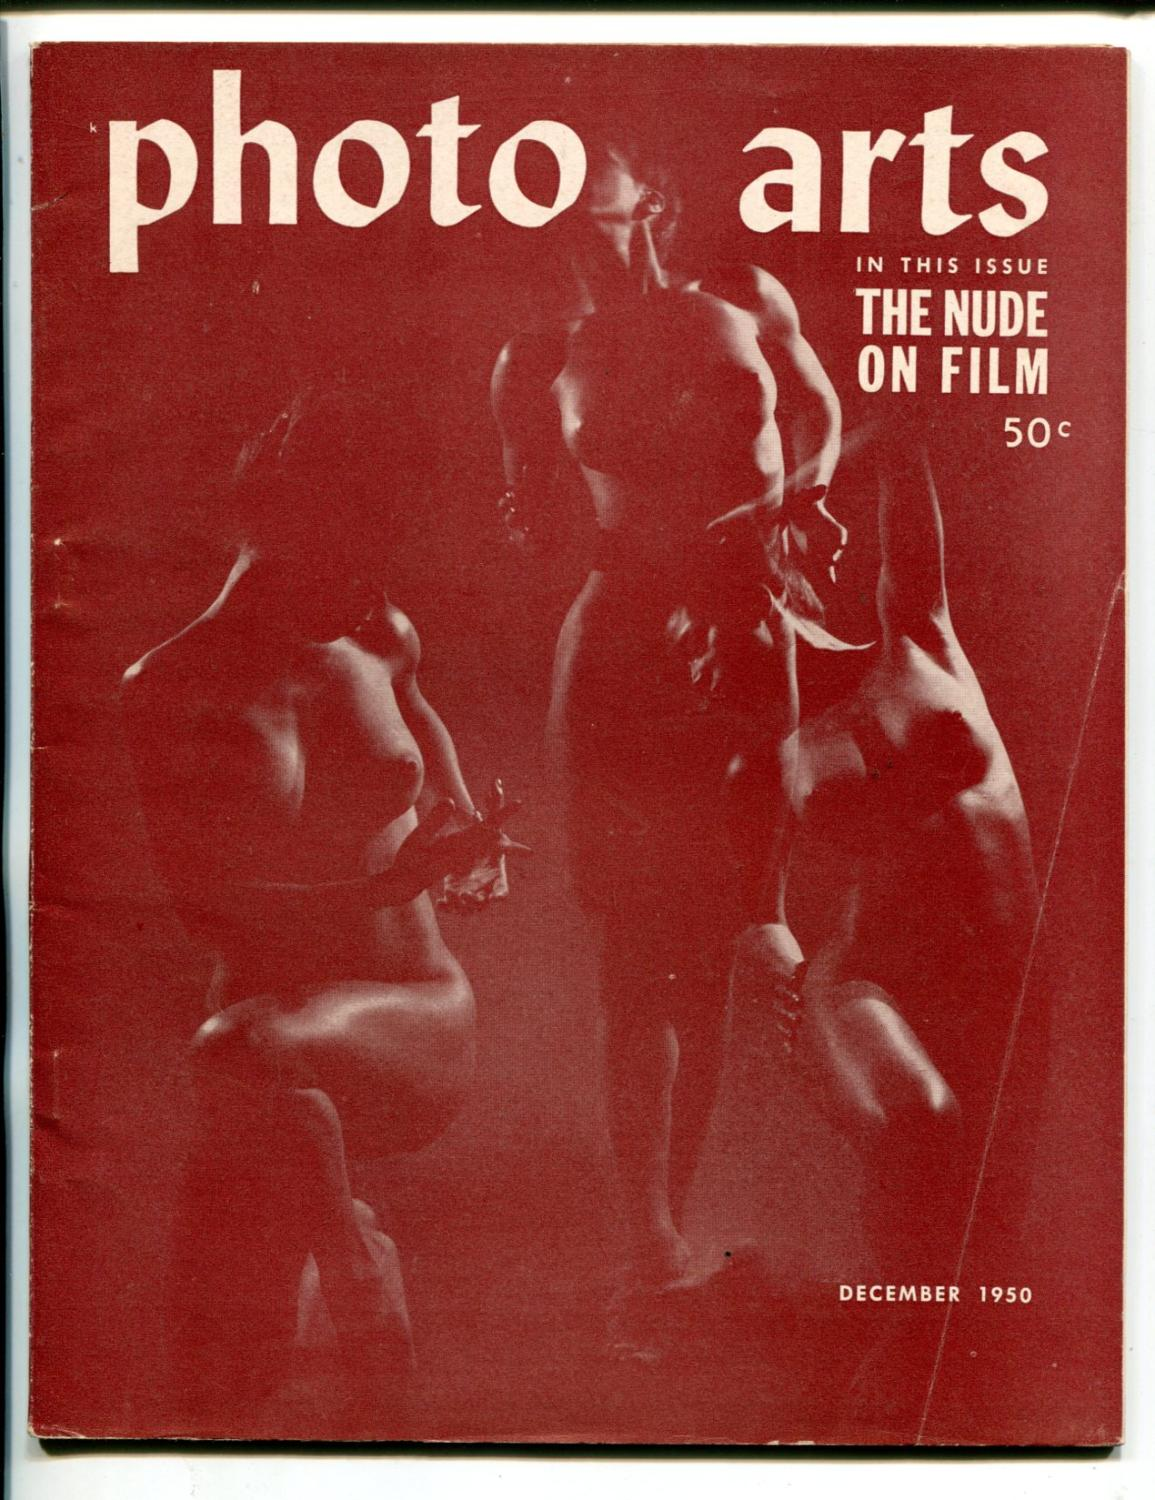 PHOTO ARTS #1-12/1950-NUDE ON FILM-CHEESECAKE-CAMERAS-SOUTHERN STATES-fn minus Fine